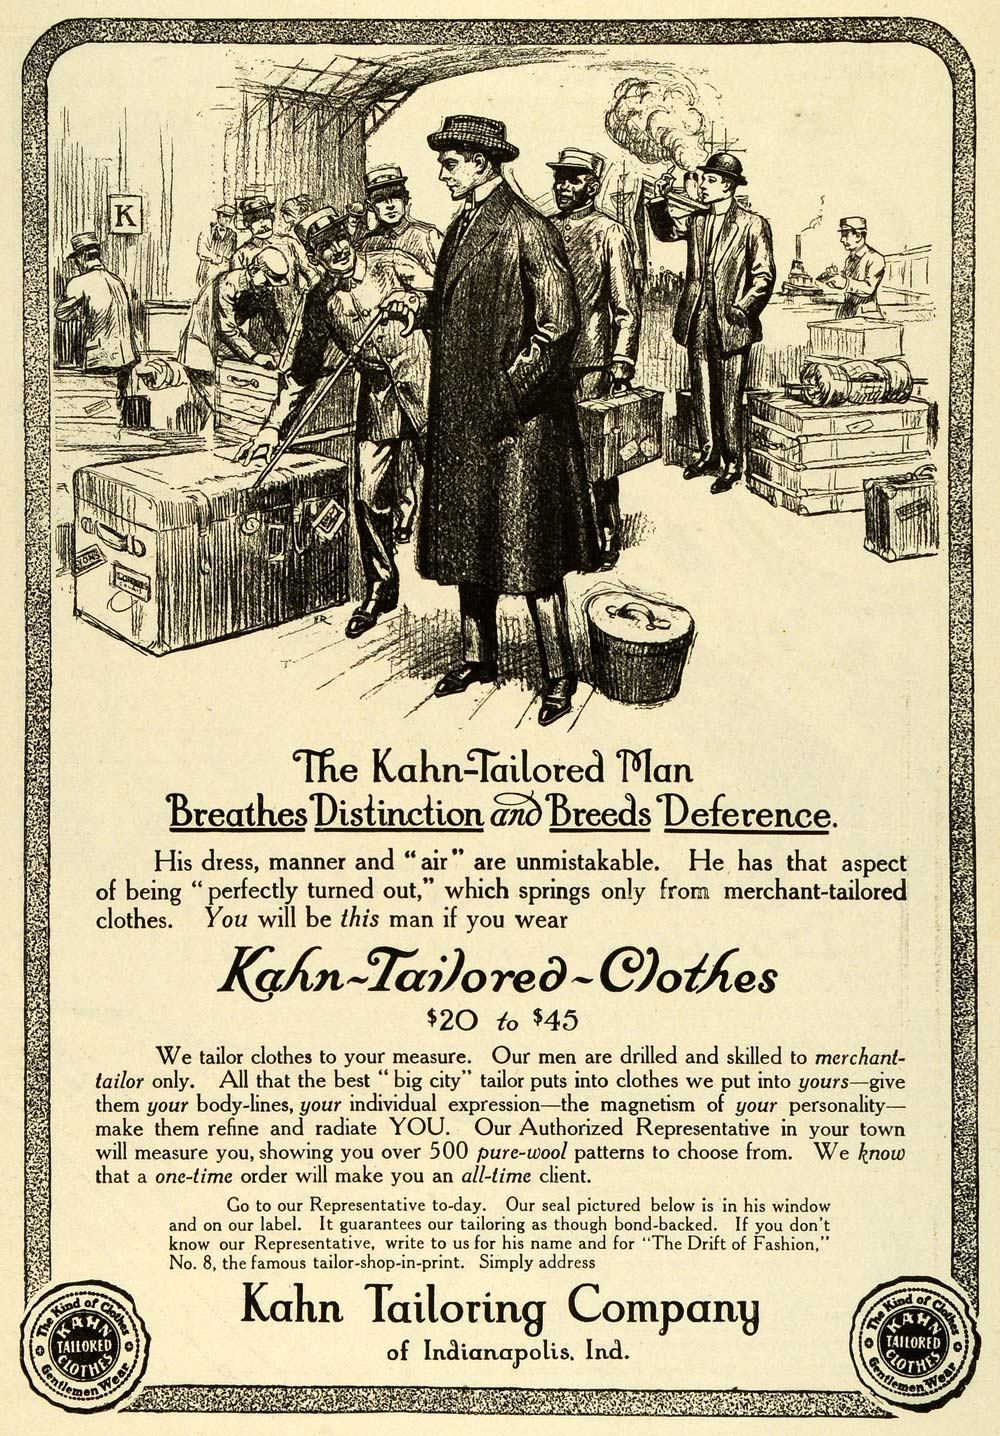 1911 Ad Kahn Tailoring Clothing Tailor Pricing Shipping Trunk Bellboy EM2